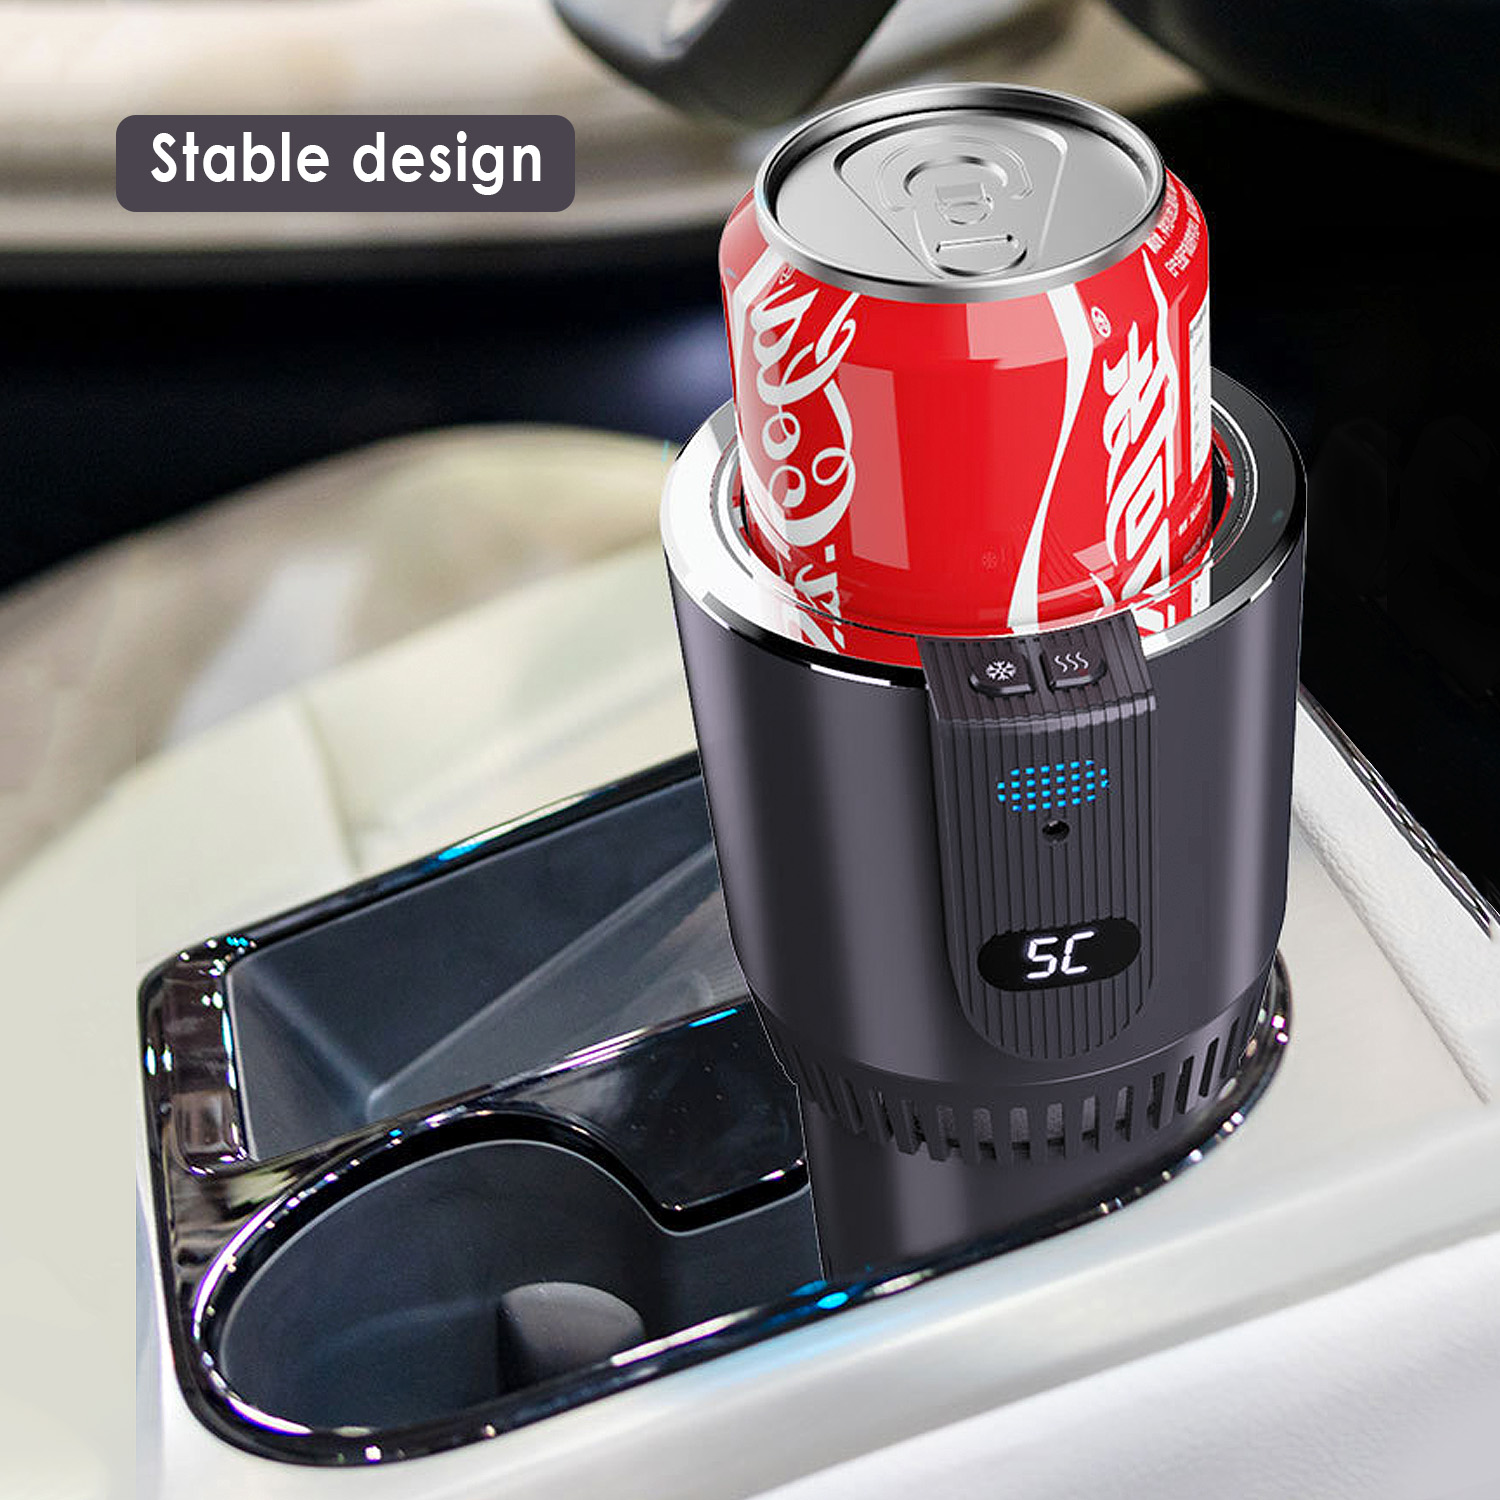 12V Car Heating Cooling Cup 2-in-1 Car Office Cup Warmer Cooler Smart Car Cup Mug Holder Tumbler Cooling Beverage Drinks Cans